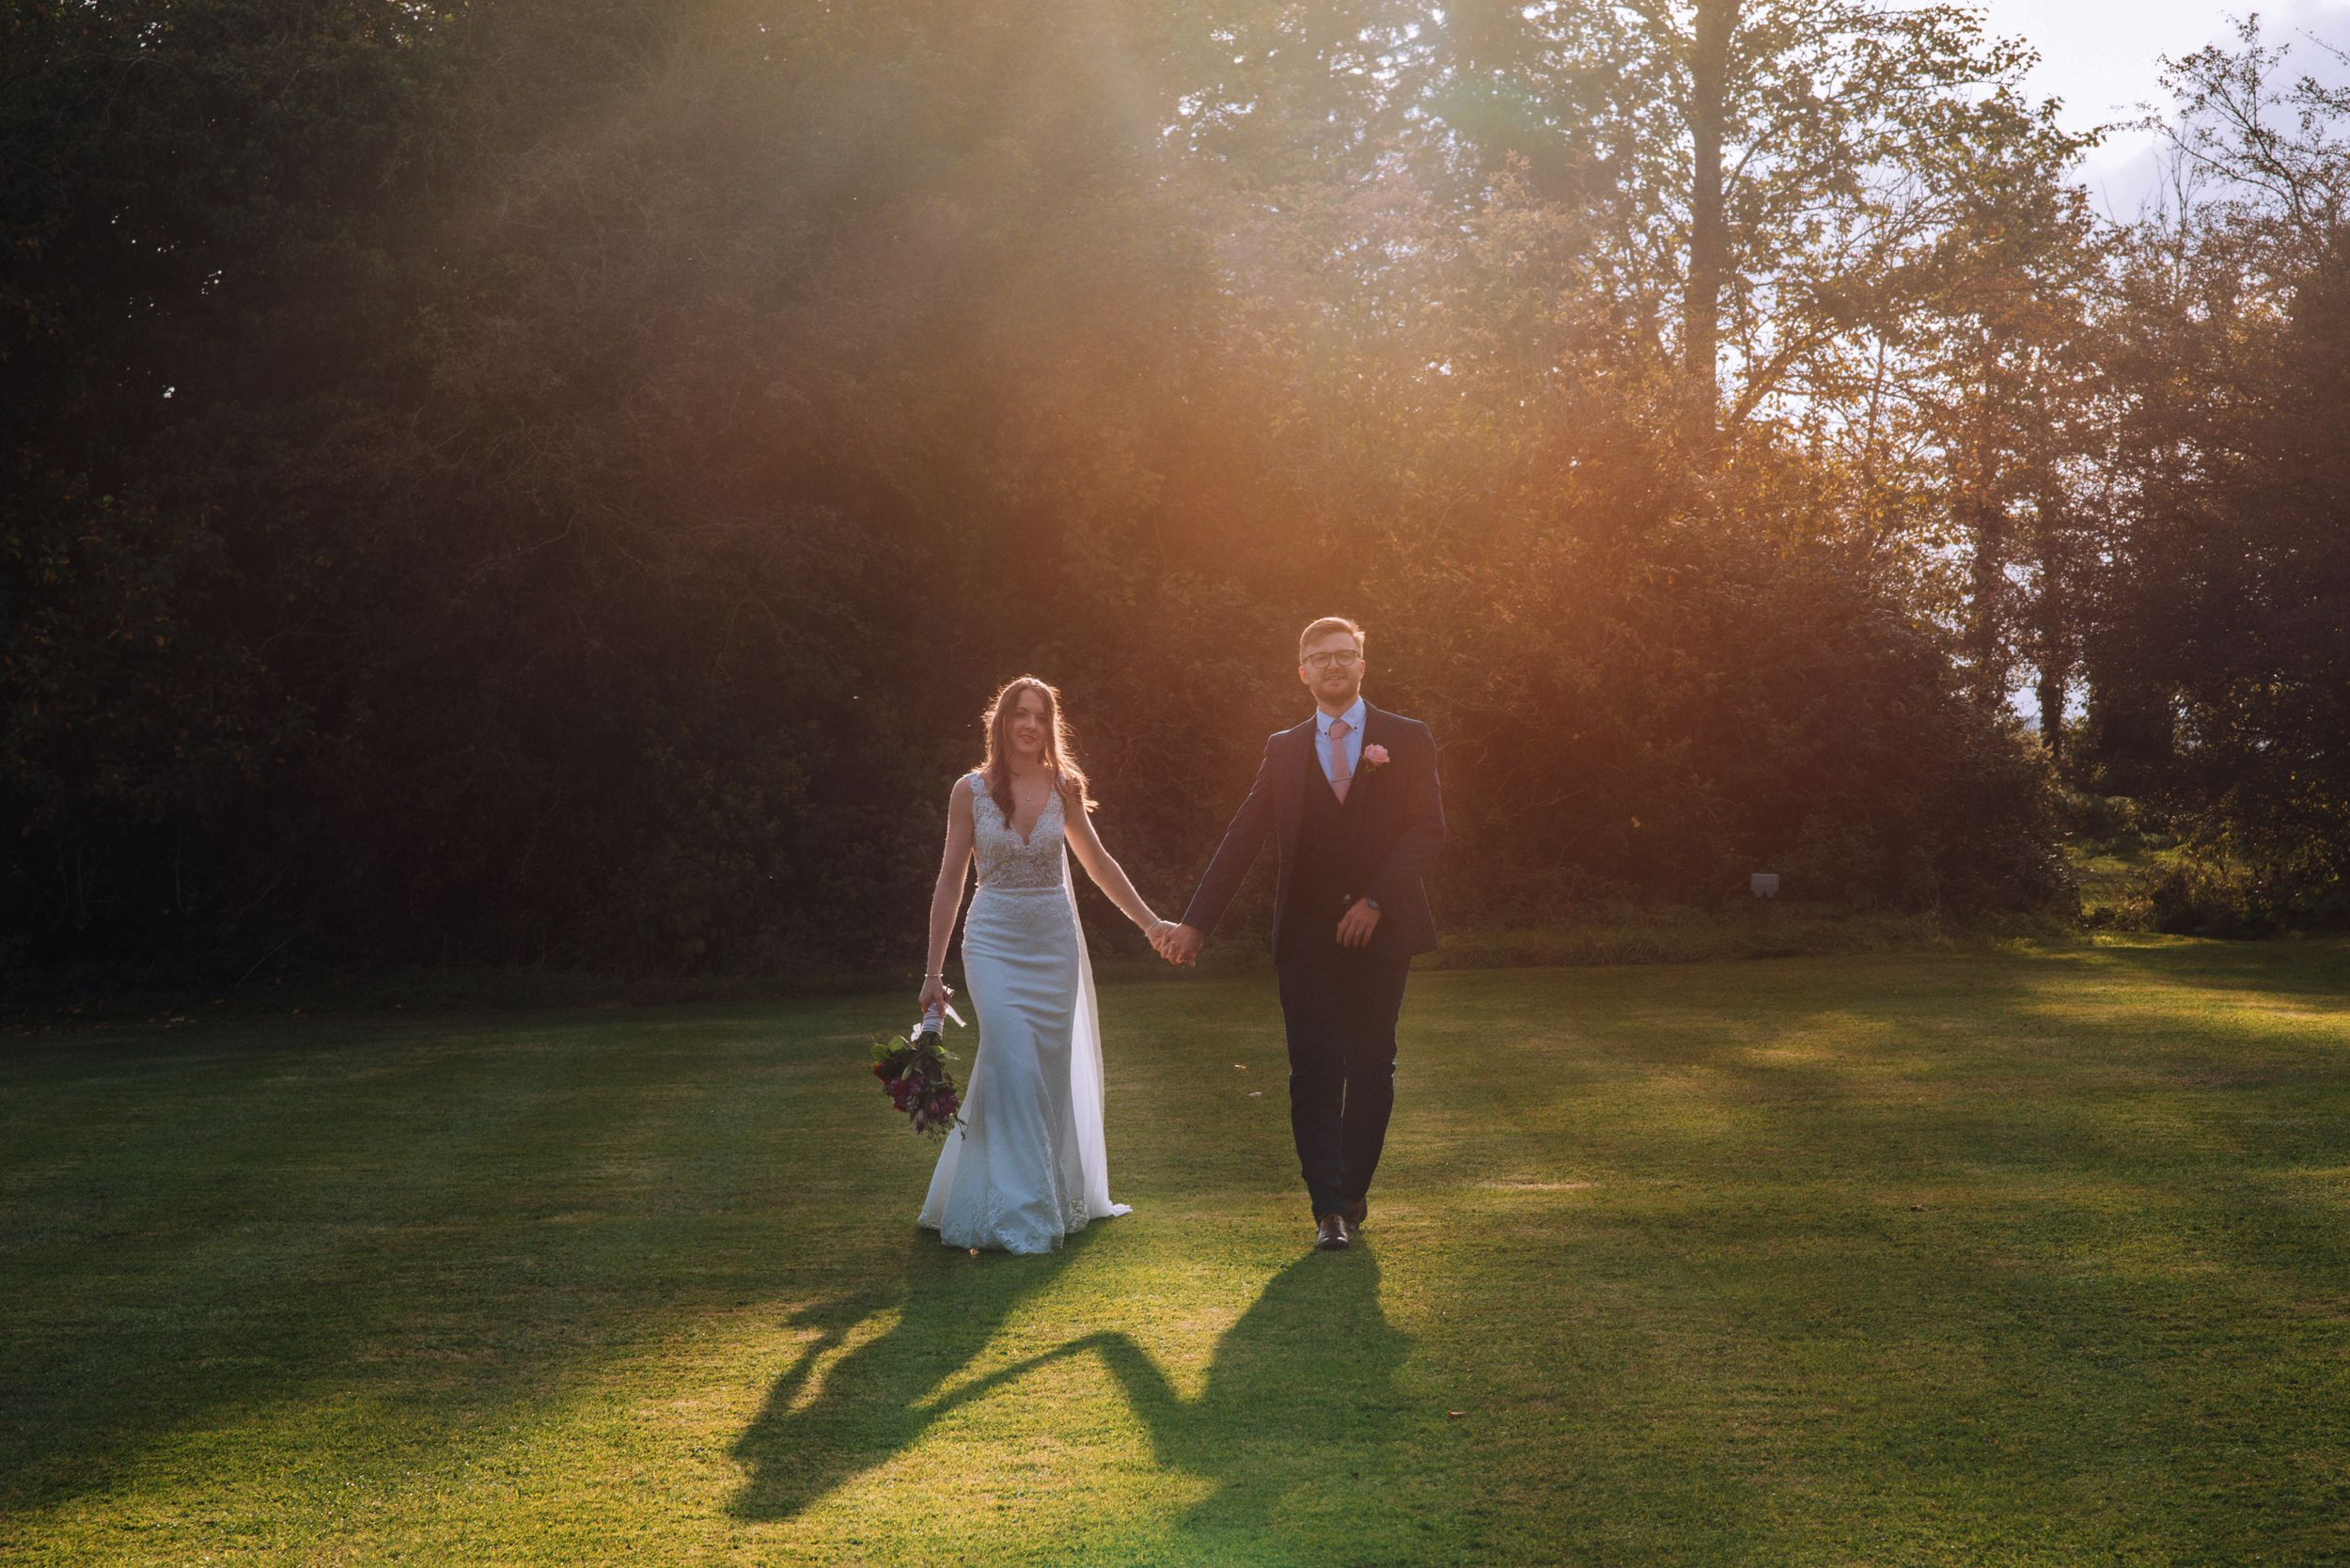 zara davis wedding photography romantic down to earth warm cricklade house cotswolds gloucestershire wiltshire sunrays